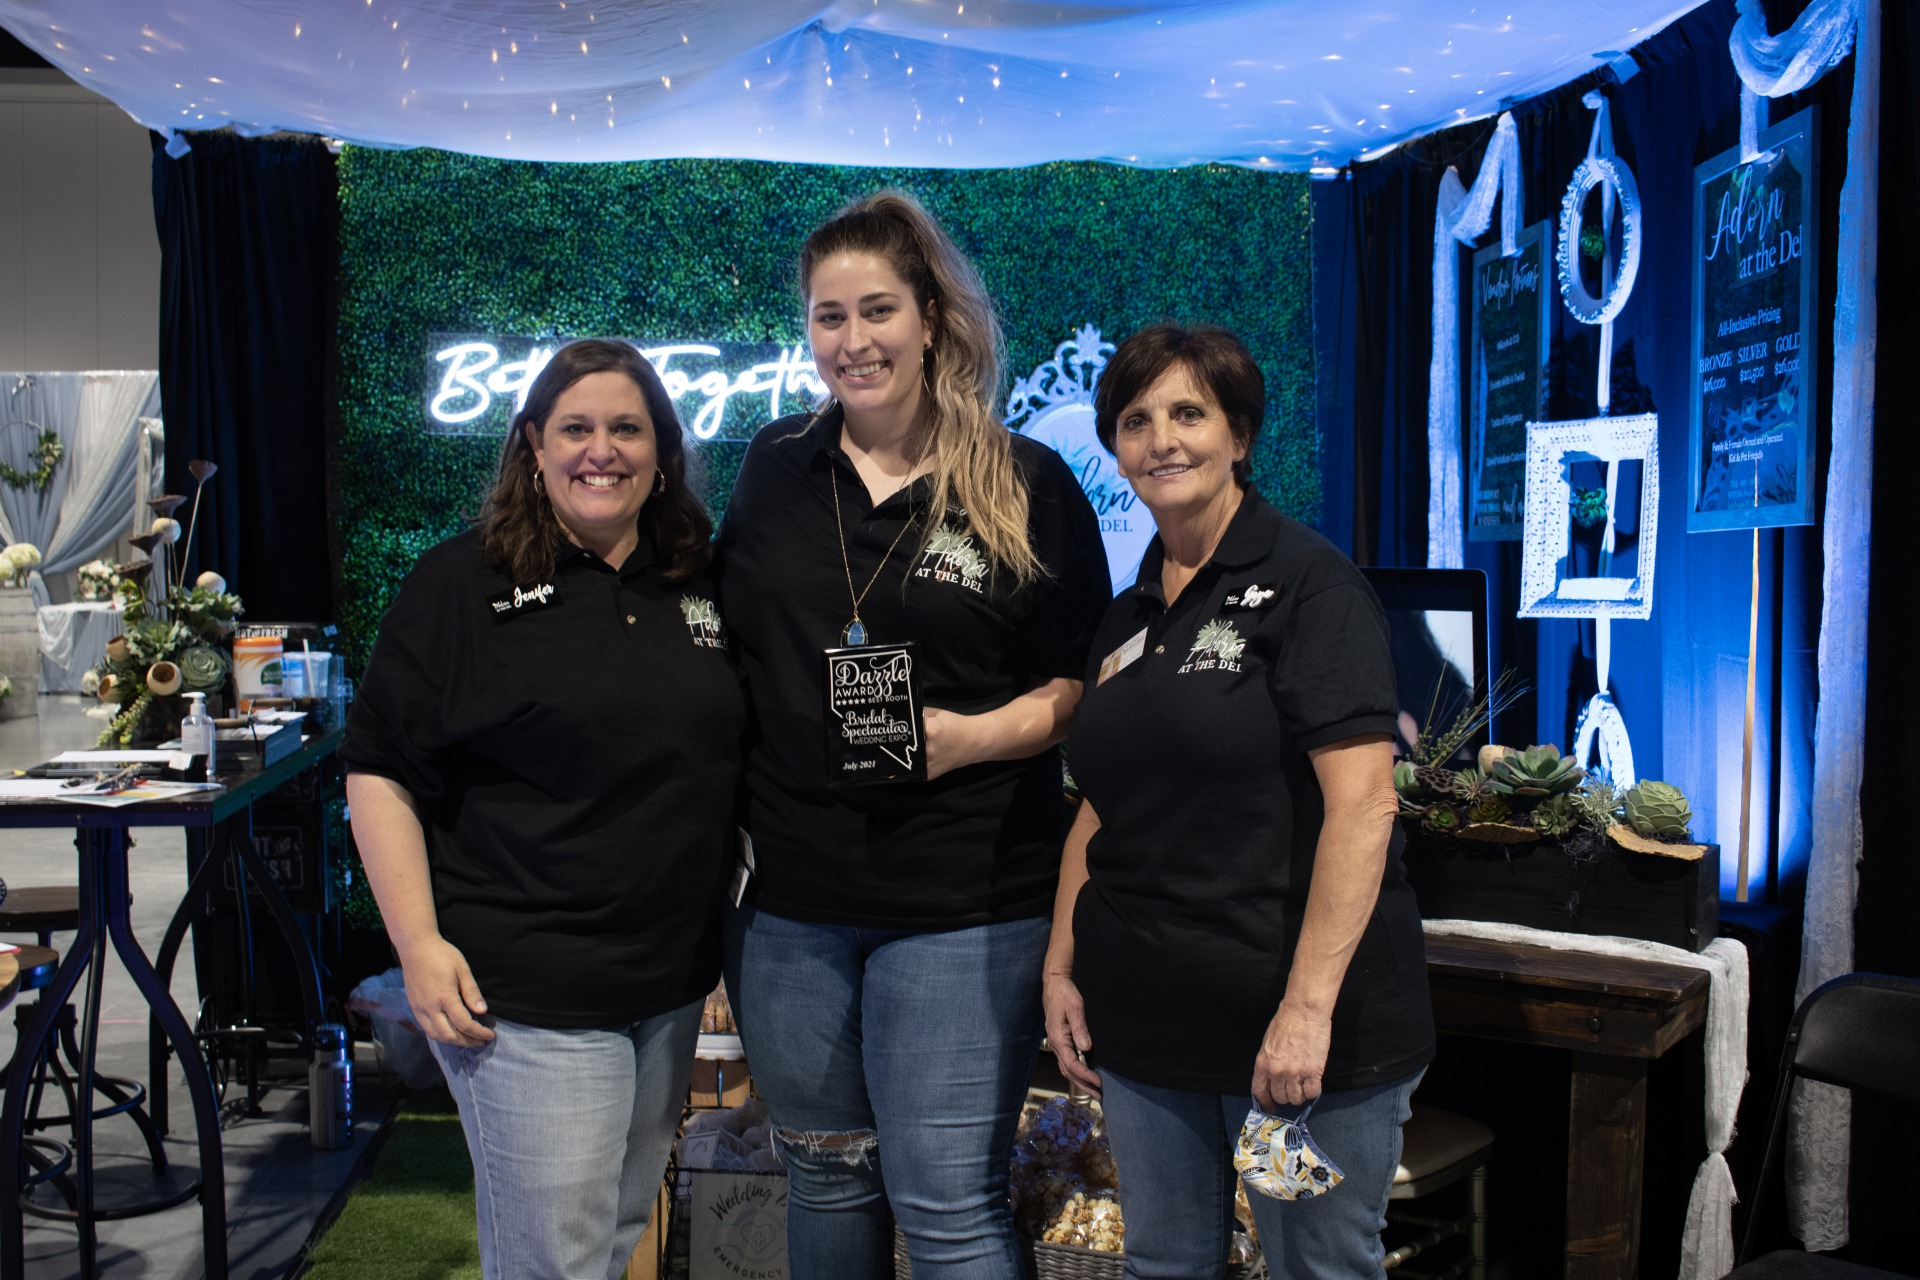 Adorn at the Del did a great job and won a best booth award at the bridal show